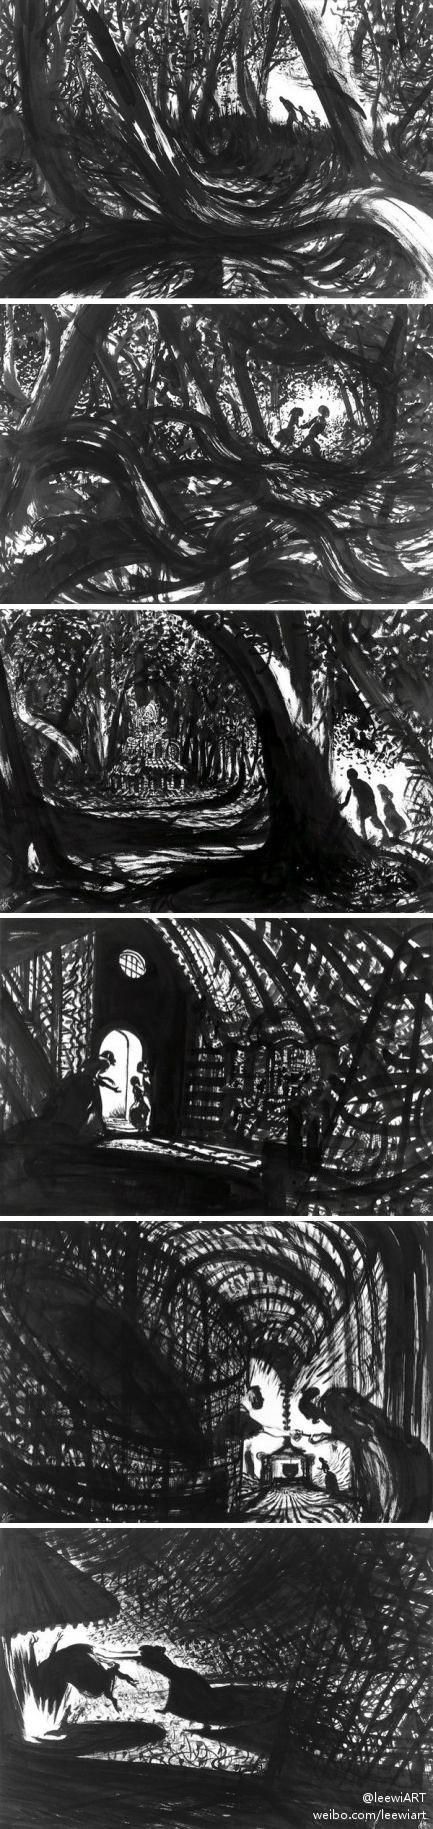 Neil Gaiman Reimagines Hansel & Gretel, with Gorgeous Black-and-White Illustrations by Italian Graphic Artist Lorenzo Mattotti